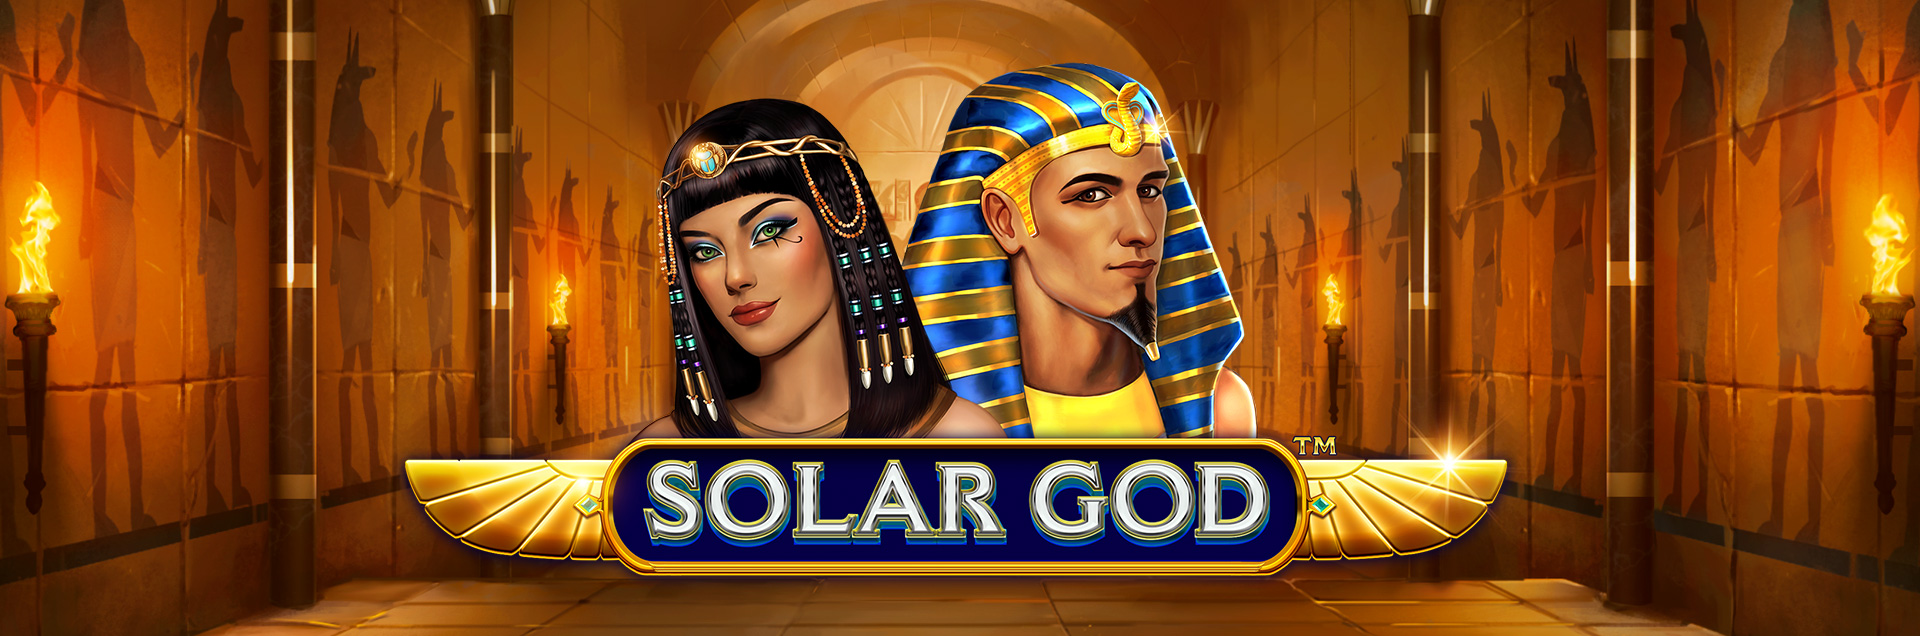 Solar God header games